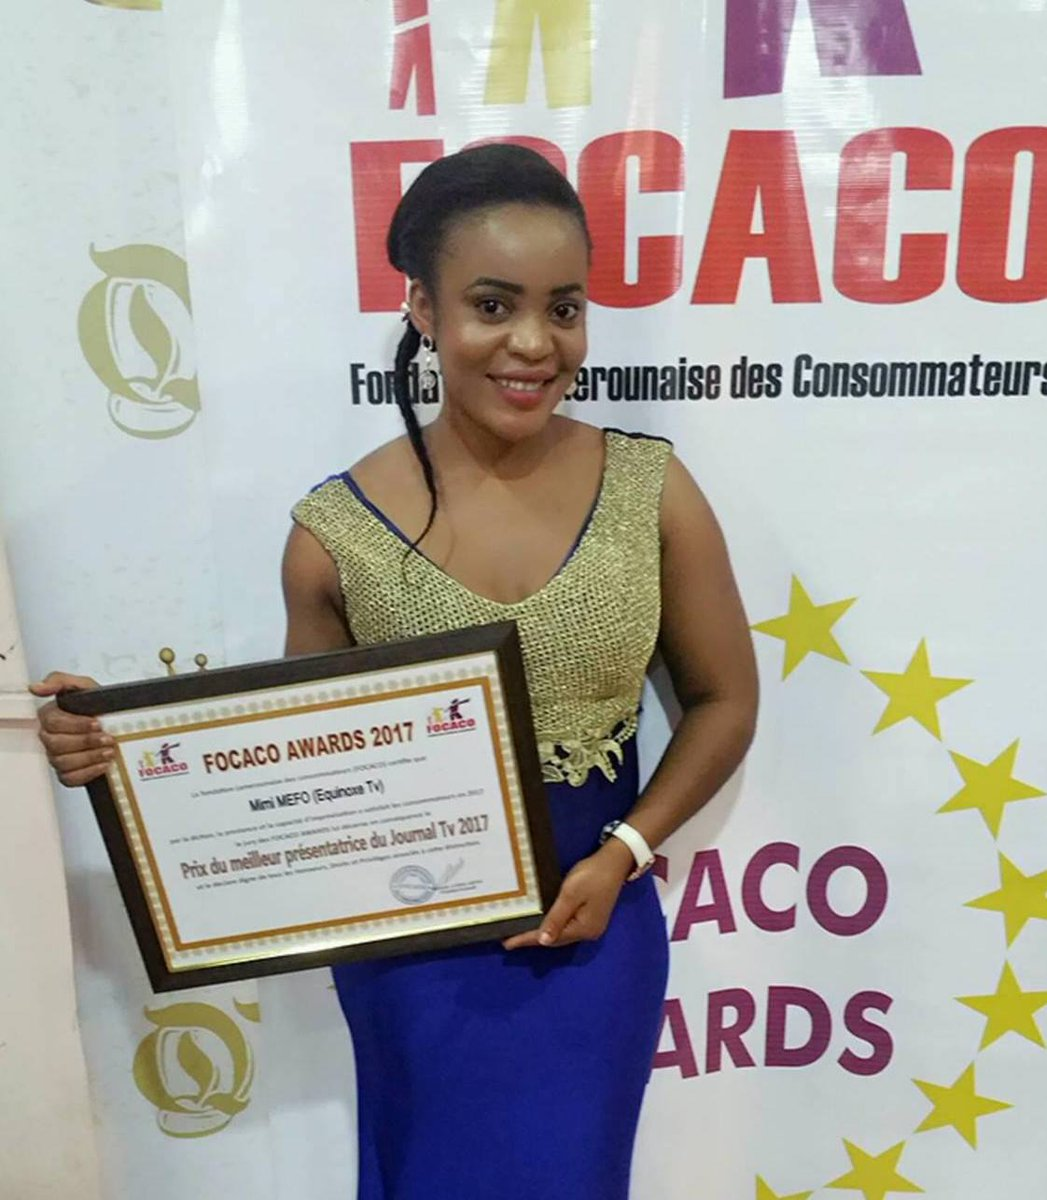 .@Mimimefo237 is an excellent presenter, well known for factual investigative journalism. Recently promoted as Editor In Chief for English Service at @EquinoxeTv_cm. Mimi has won several national awards as best female presenter. #FreeMimiMefo #Cameroon #Cameroun